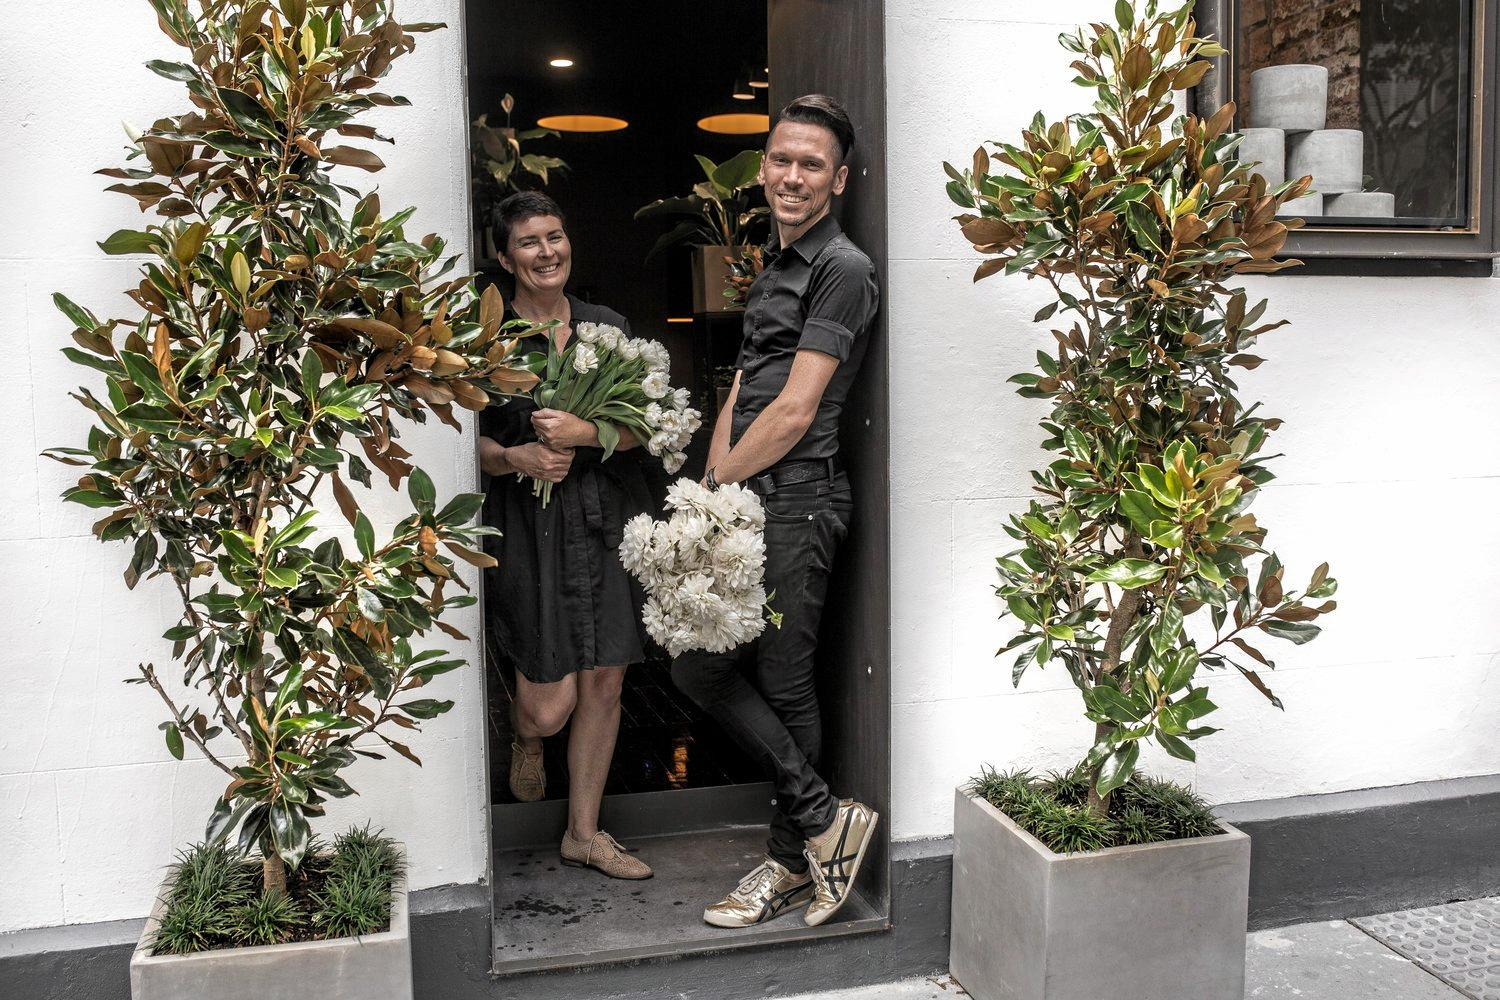 WINNERS ARE GRINNERS: Bundaberg's Bart Hassam claimed first place at the Florist World Cup in Philadelphia.